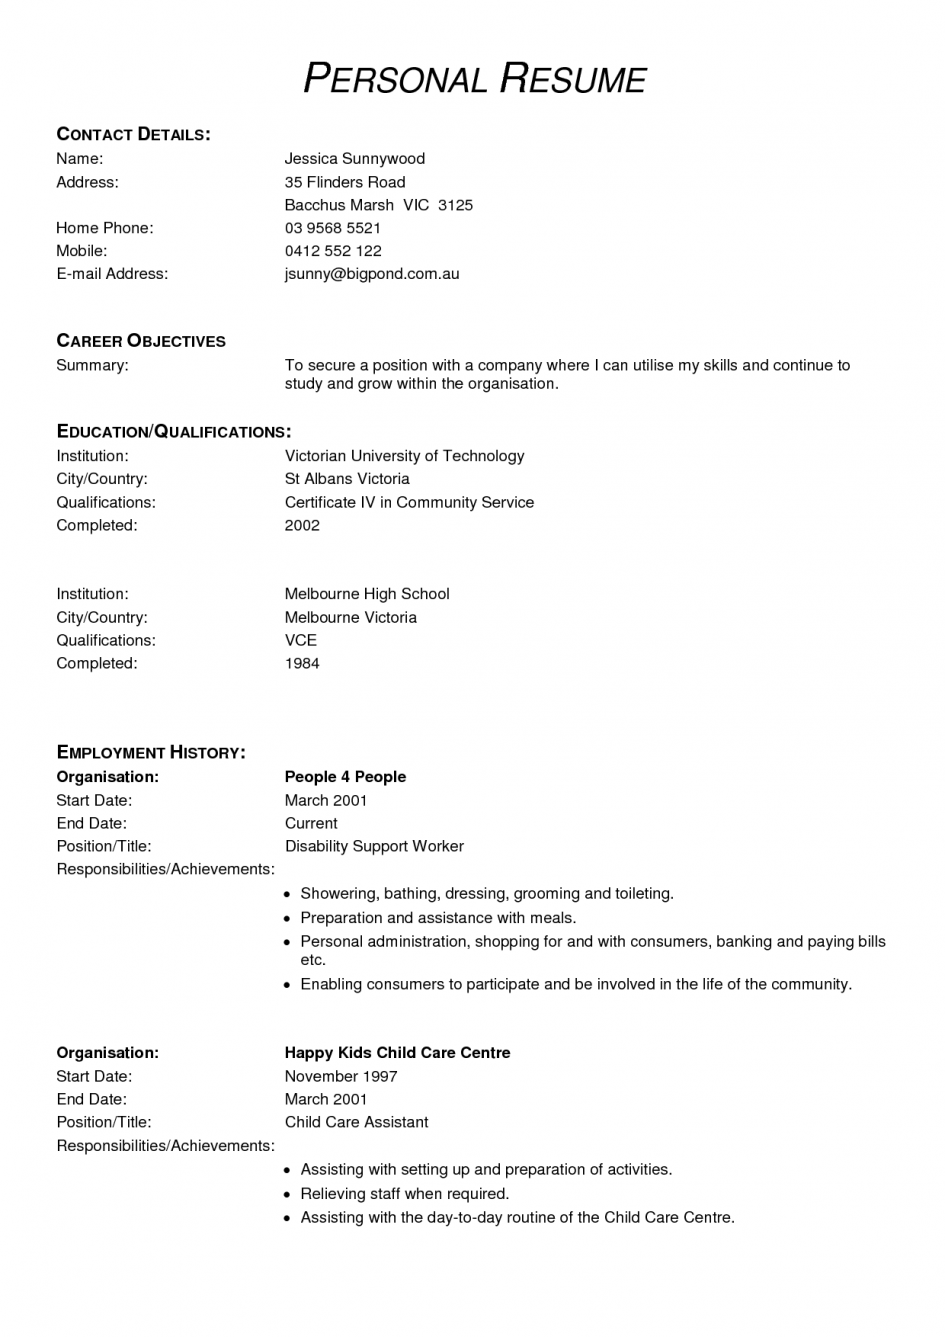 Resume Templates With No Experience Healthcareassistantcvwithnoexperience 945×1337